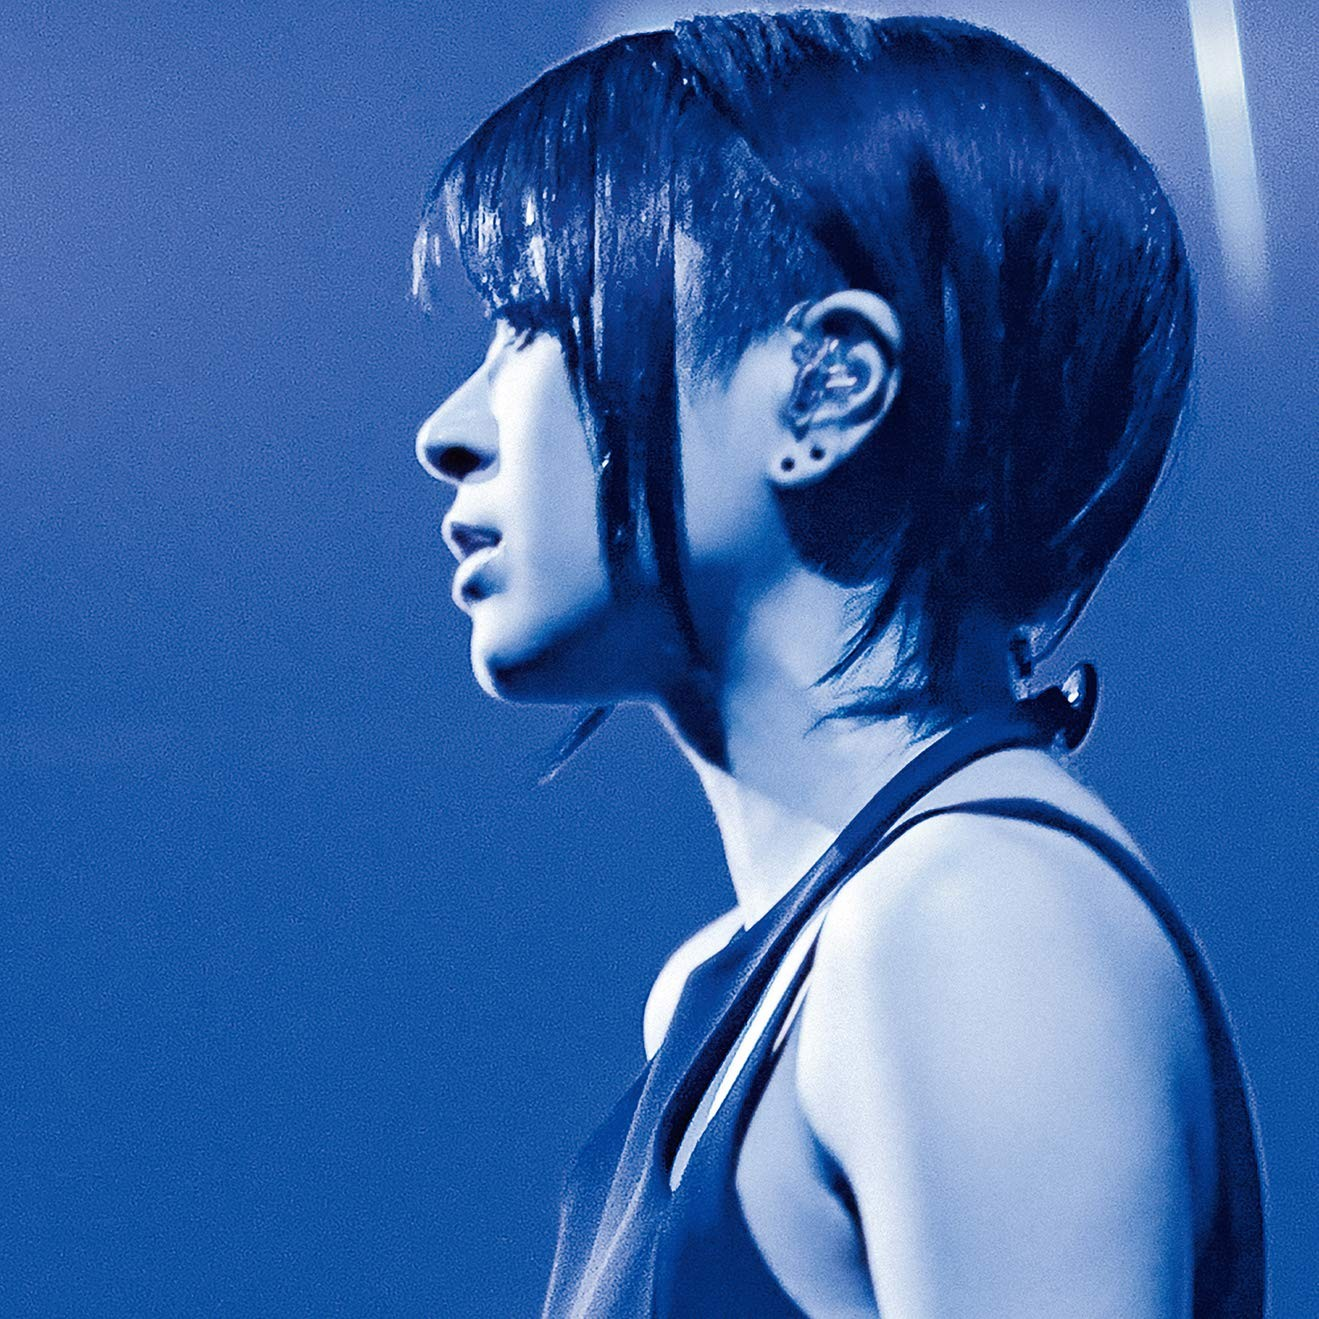 宇多田ヒカル (Utada Hikaru) – Hikaru Utada Laughter in the Dark Tour 2018 [Blu-rayISO+ FLAC + MP3 320]